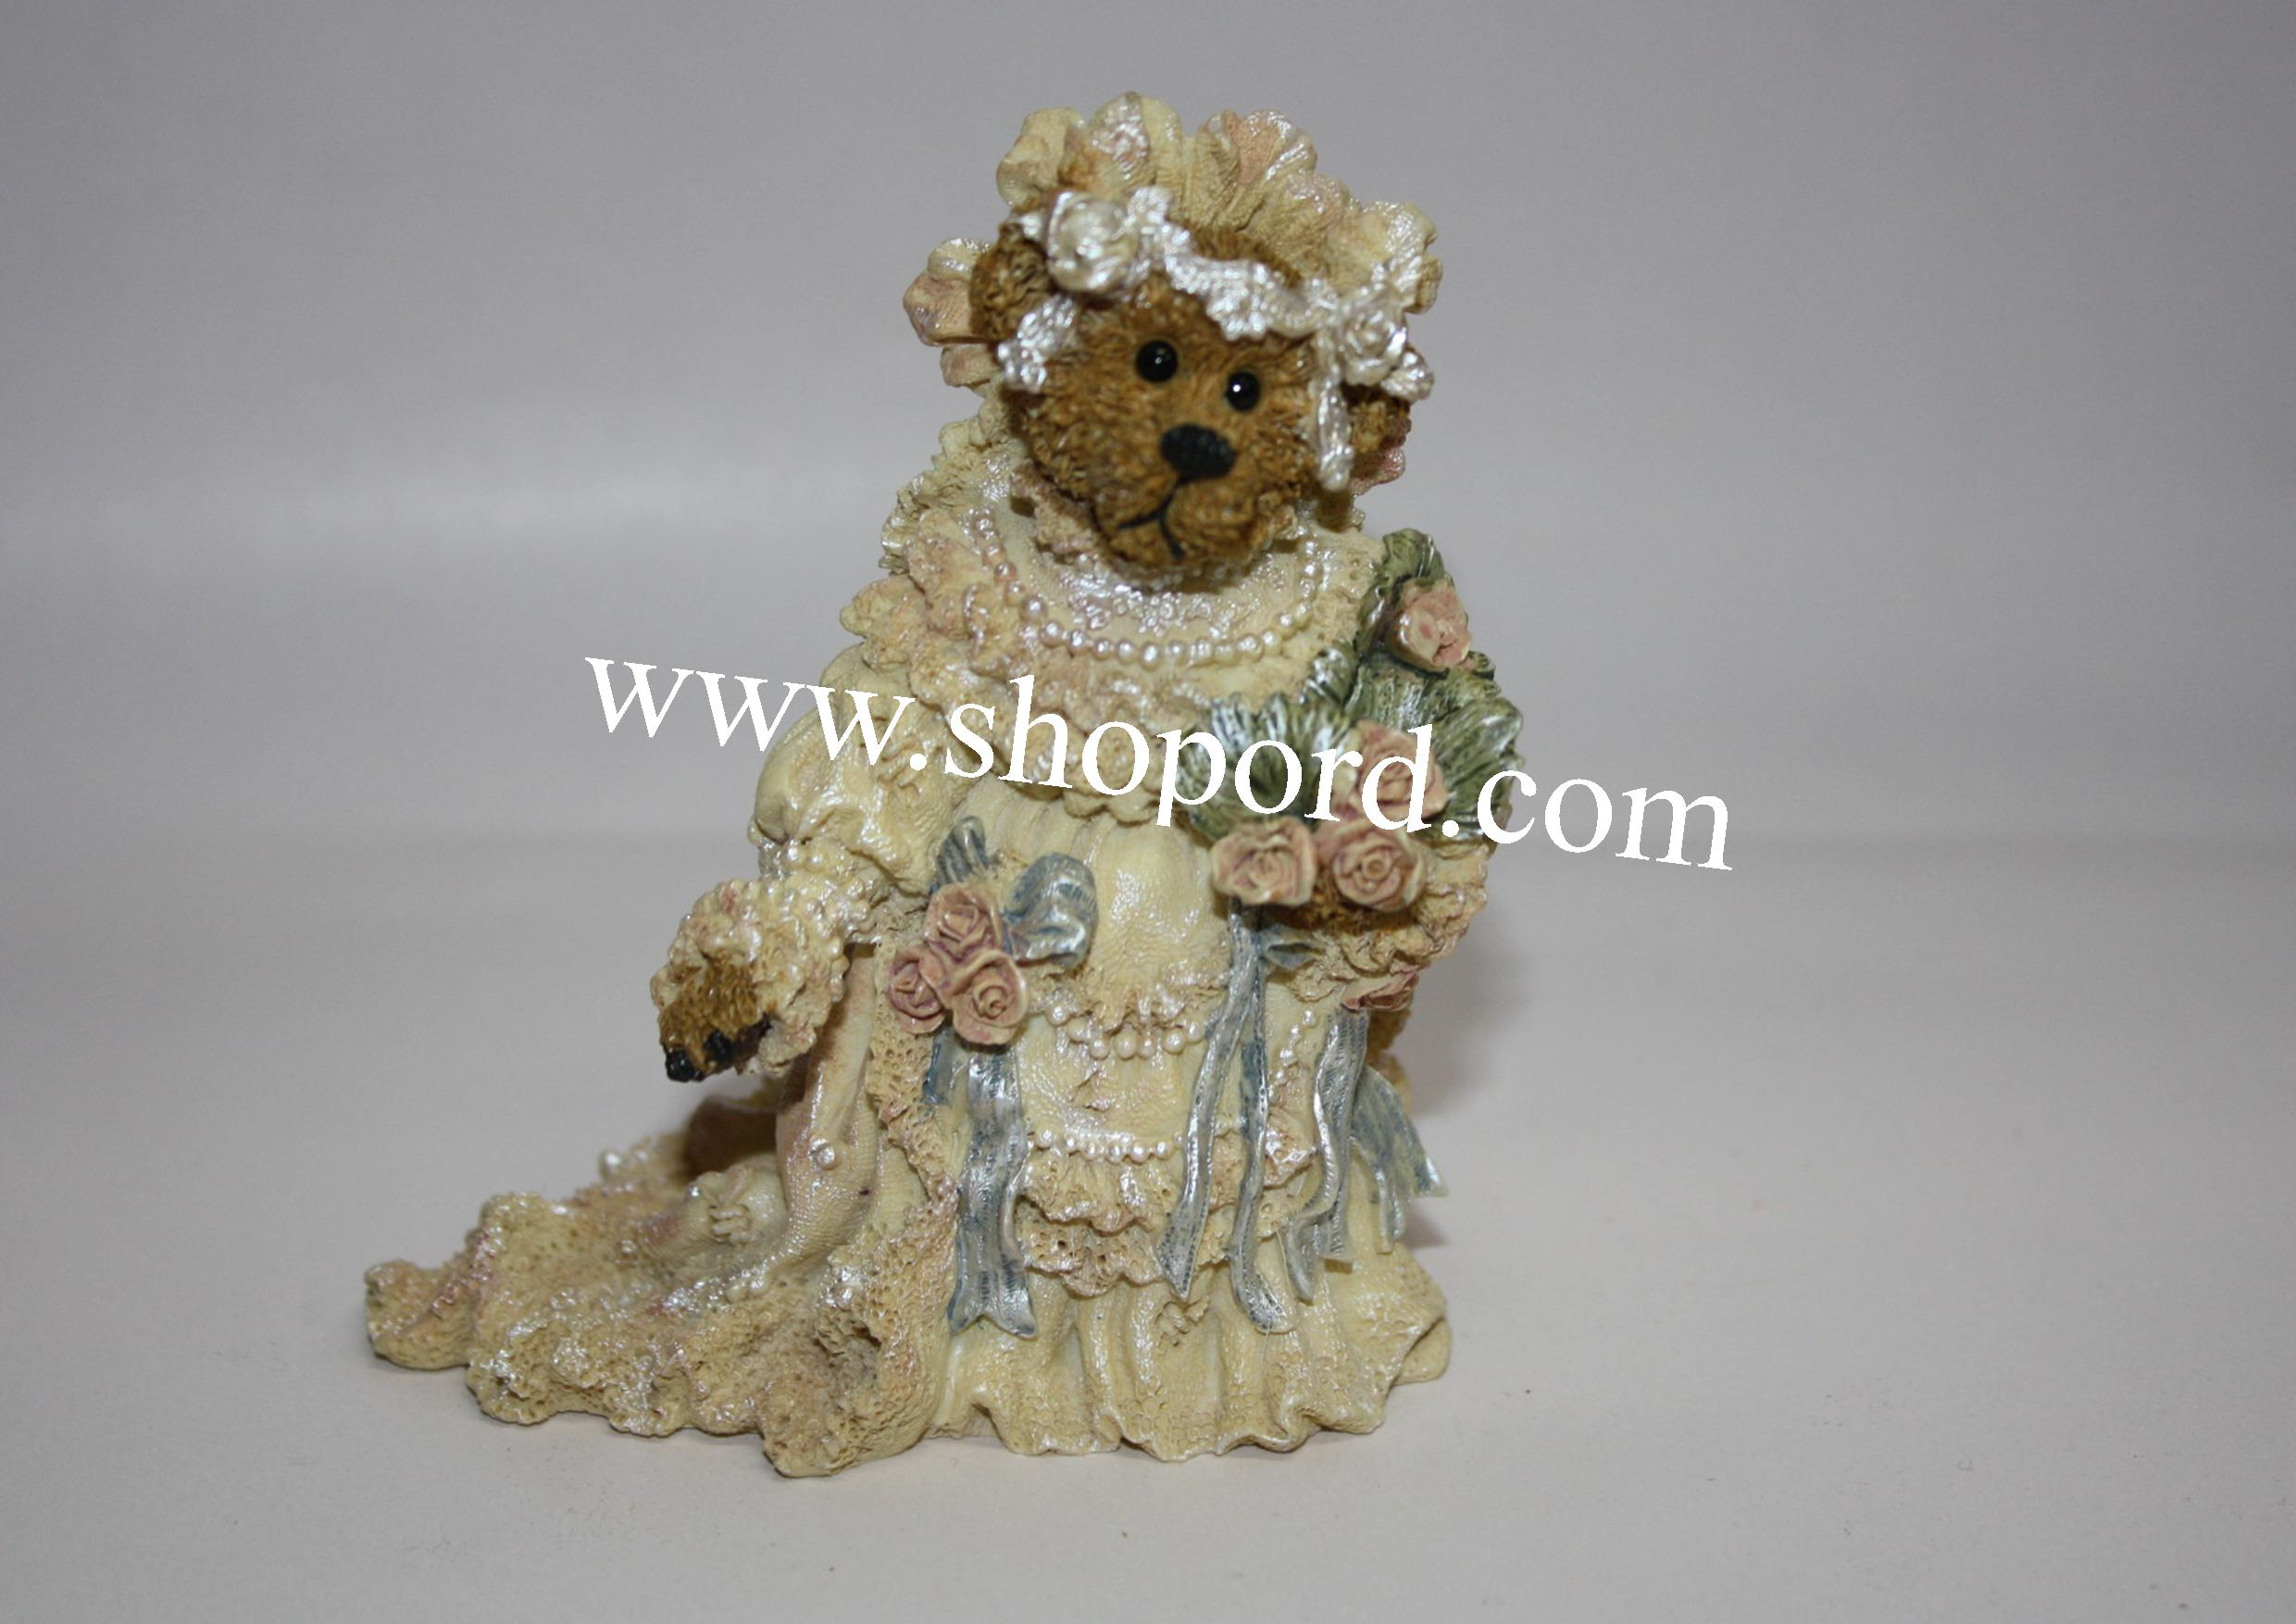 Boyds The Bearstone Collection - Bailey (The Bride) #227712